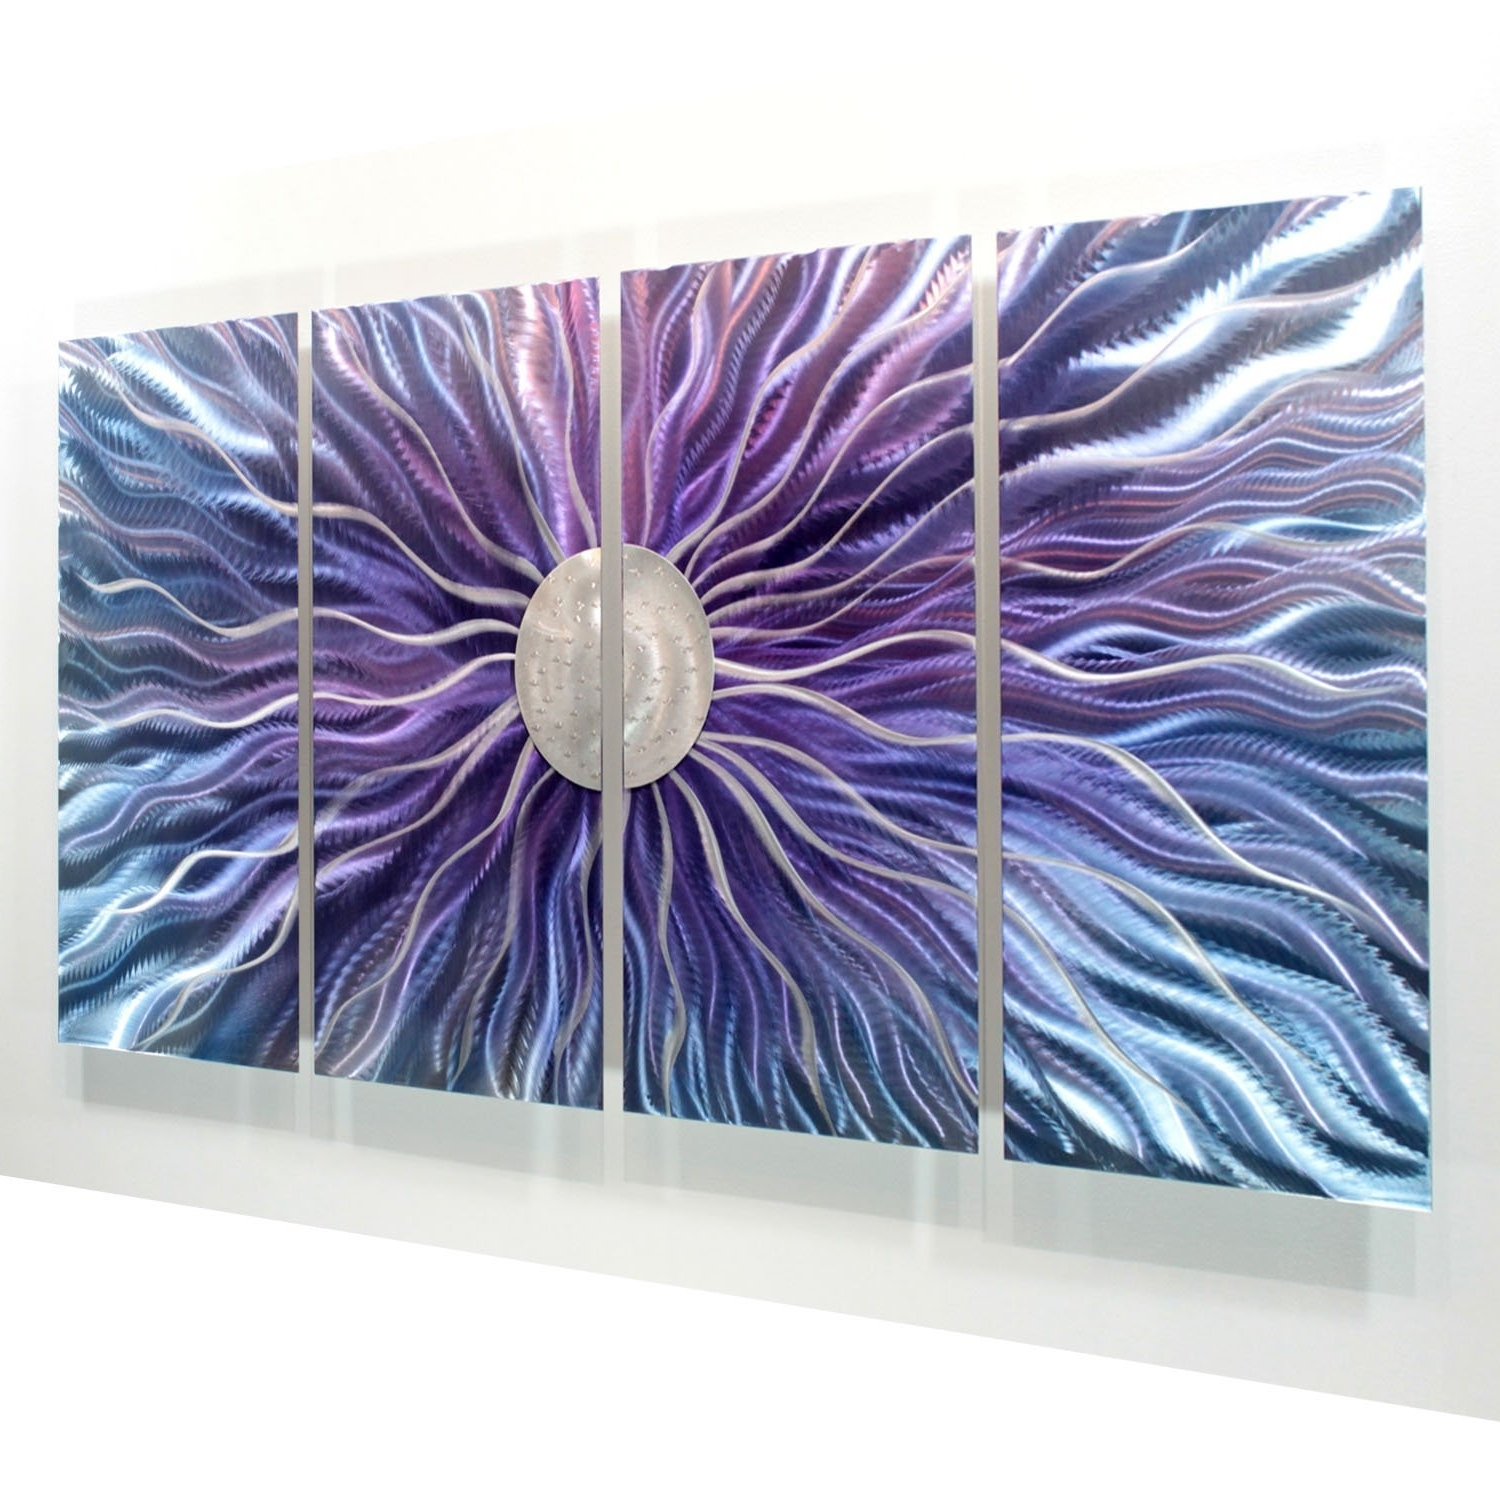 Contemporary Metal Wall Art Sculpture Throughout Most Up To Date Amazon: Large Blue, Purple, And Silver Metal Wall Art Painting (View 3 of 15)